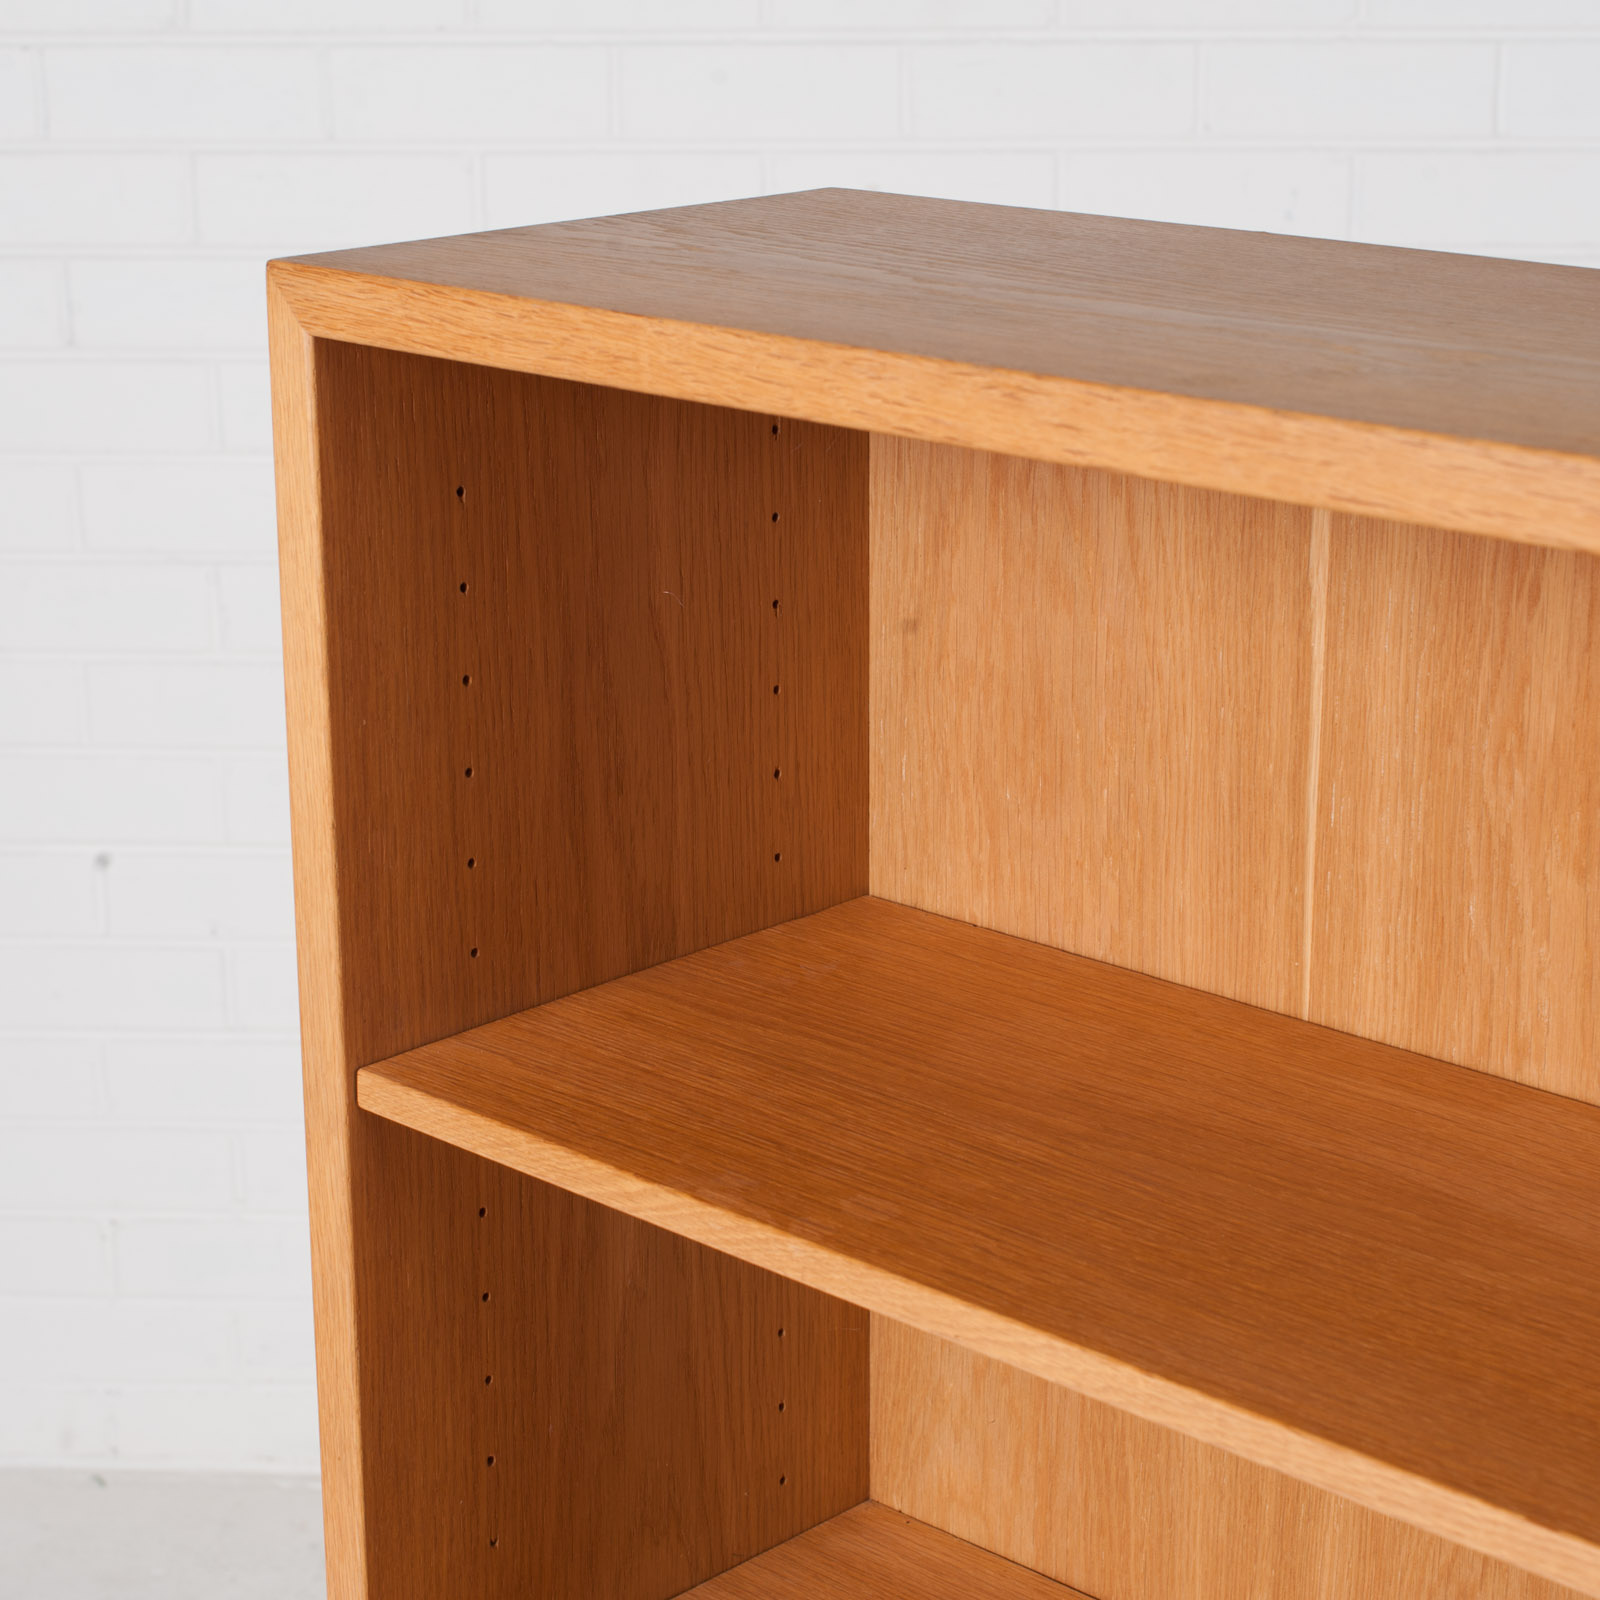 Bookcase By Borge Mogensen In Oak 1960s Denmark 07